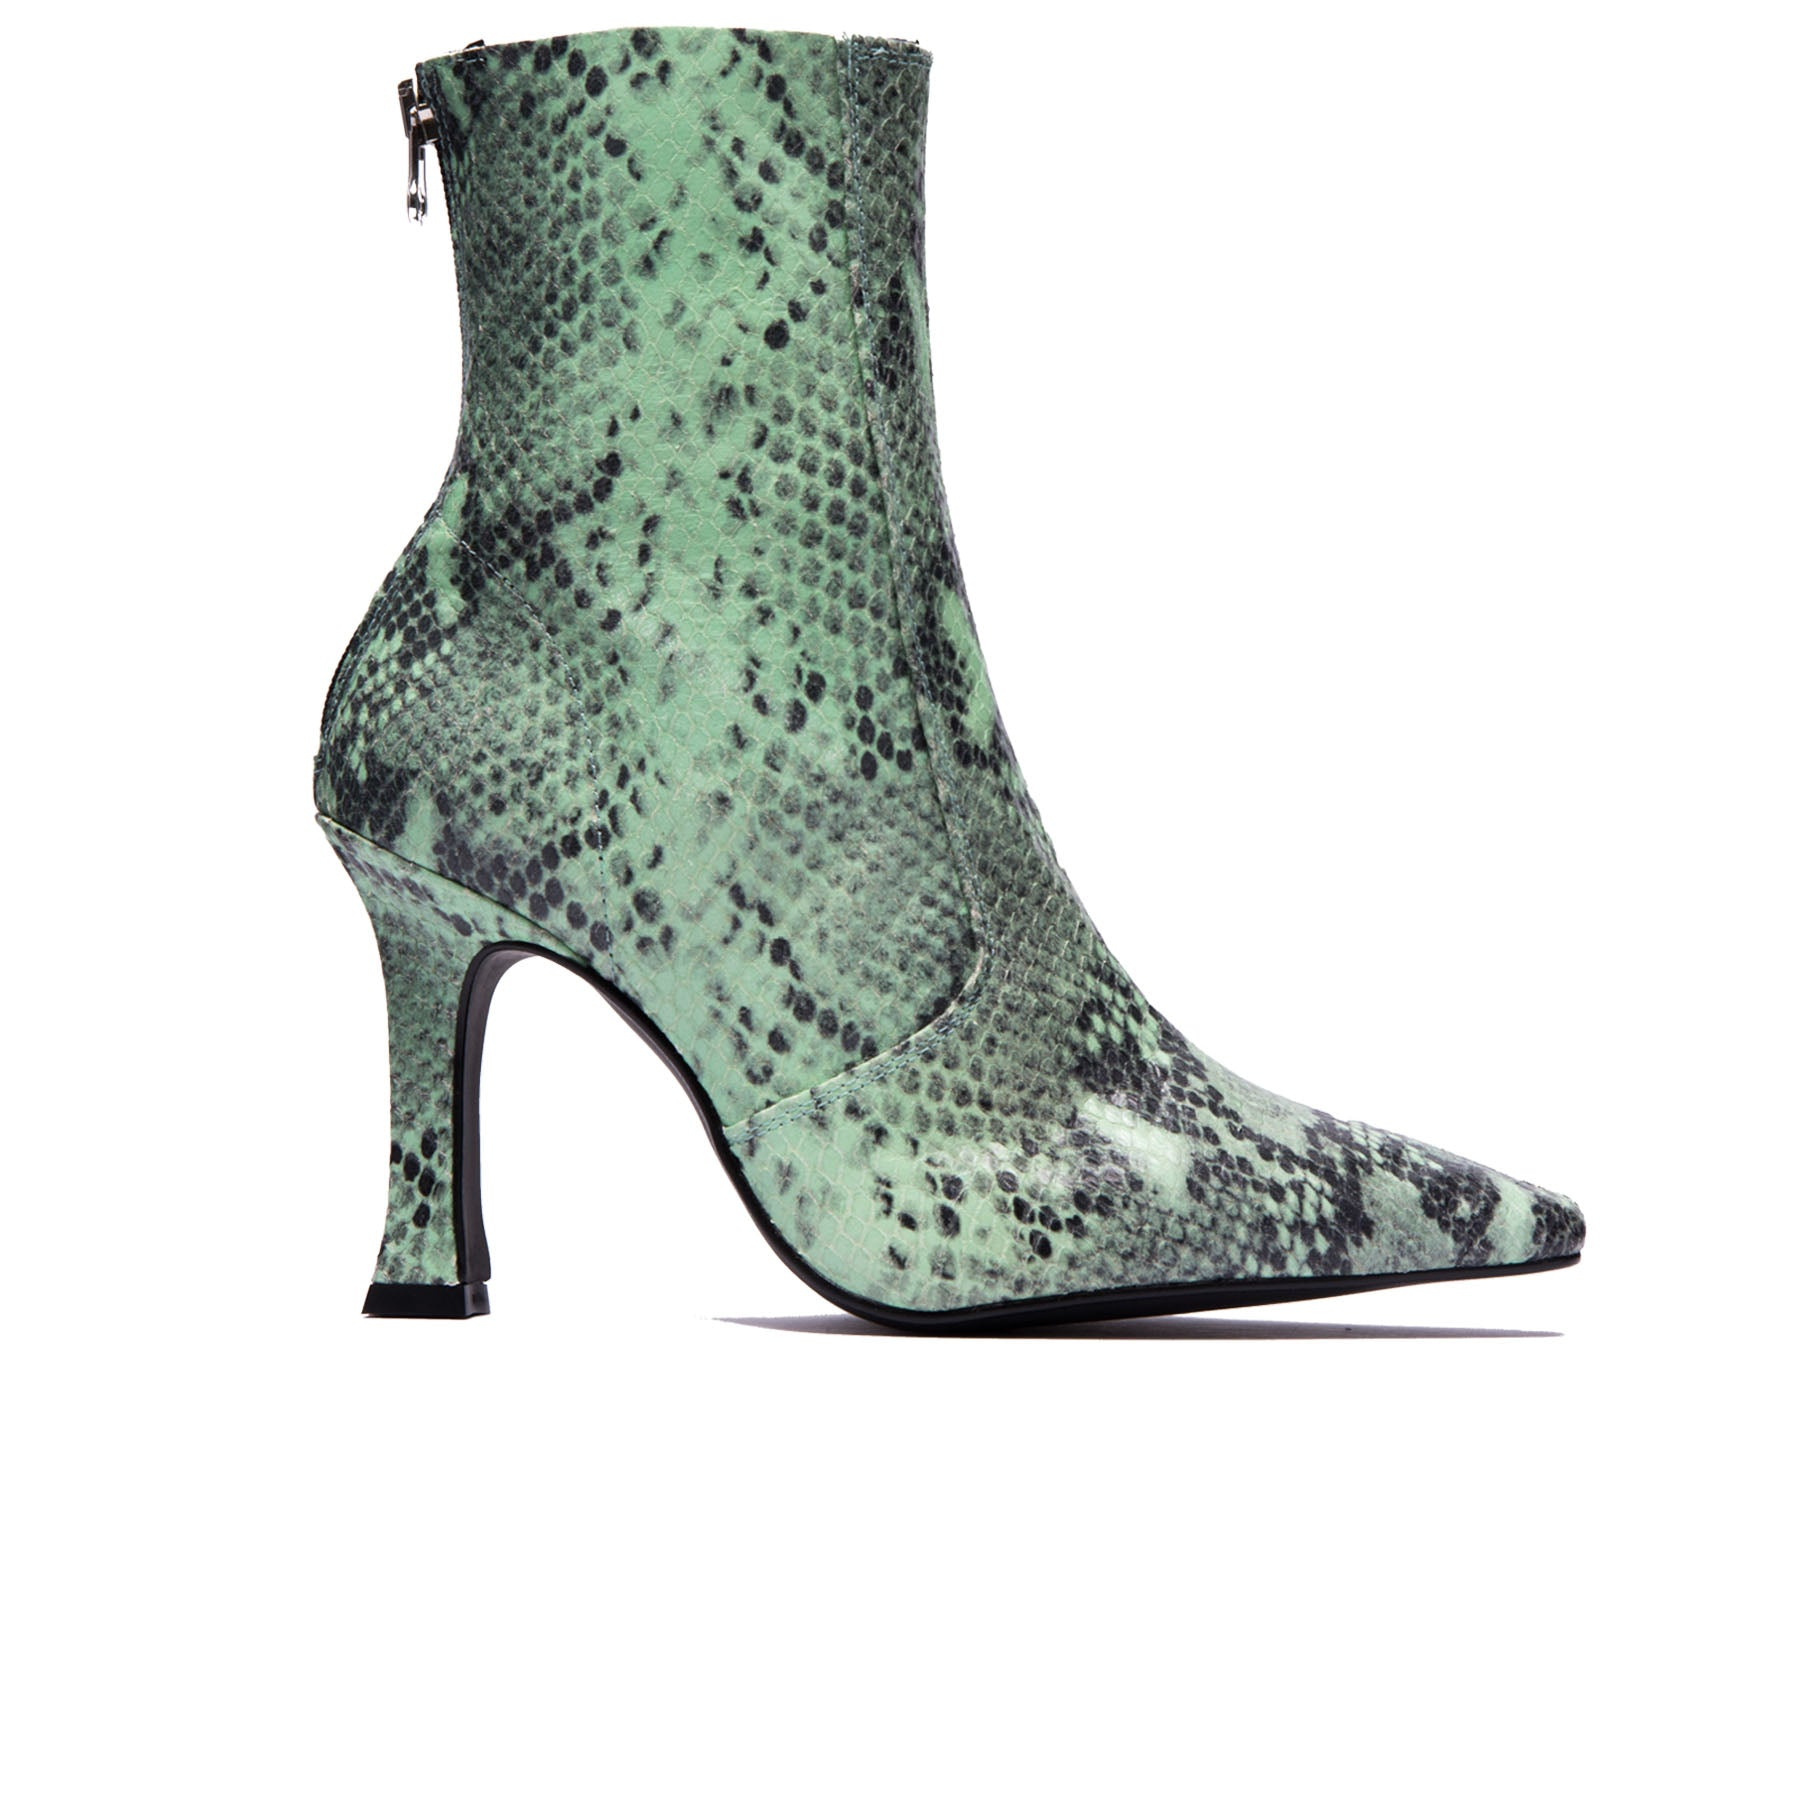 Dukette Light Green Snake Boots